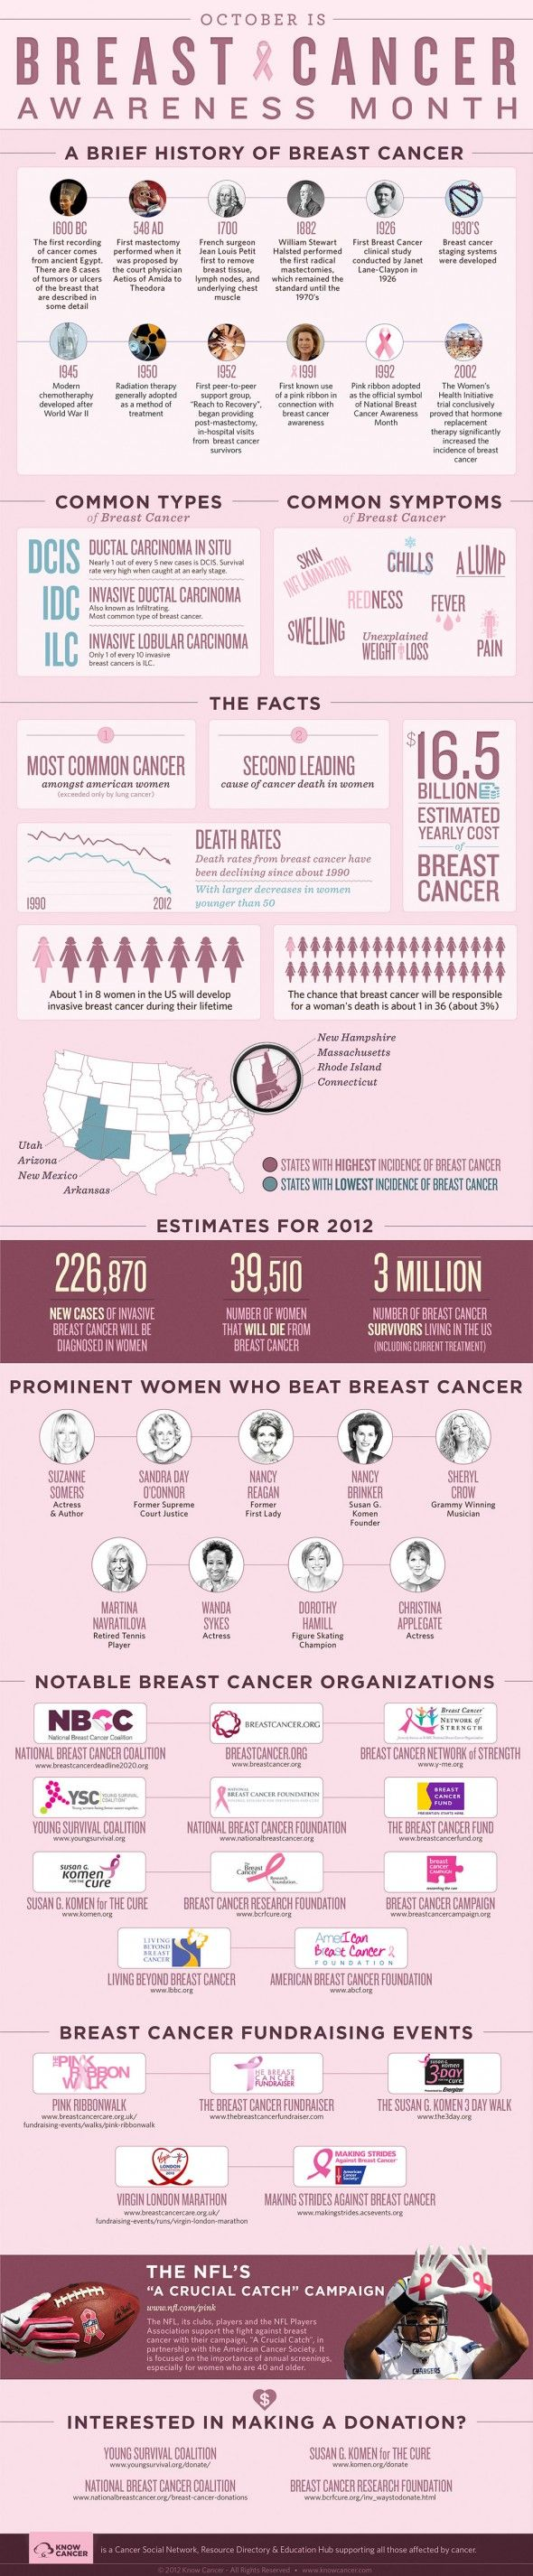 #BreastCancer Awareness Month is coming up in October. Check out this interesting #infographic.  For more information on Breast Cancer, visit the Breast Cancer Resource Center at ChemotherapyAdvisor.com: http://www.chemotherapyadvisor.com/breast-cancer/section/2400/